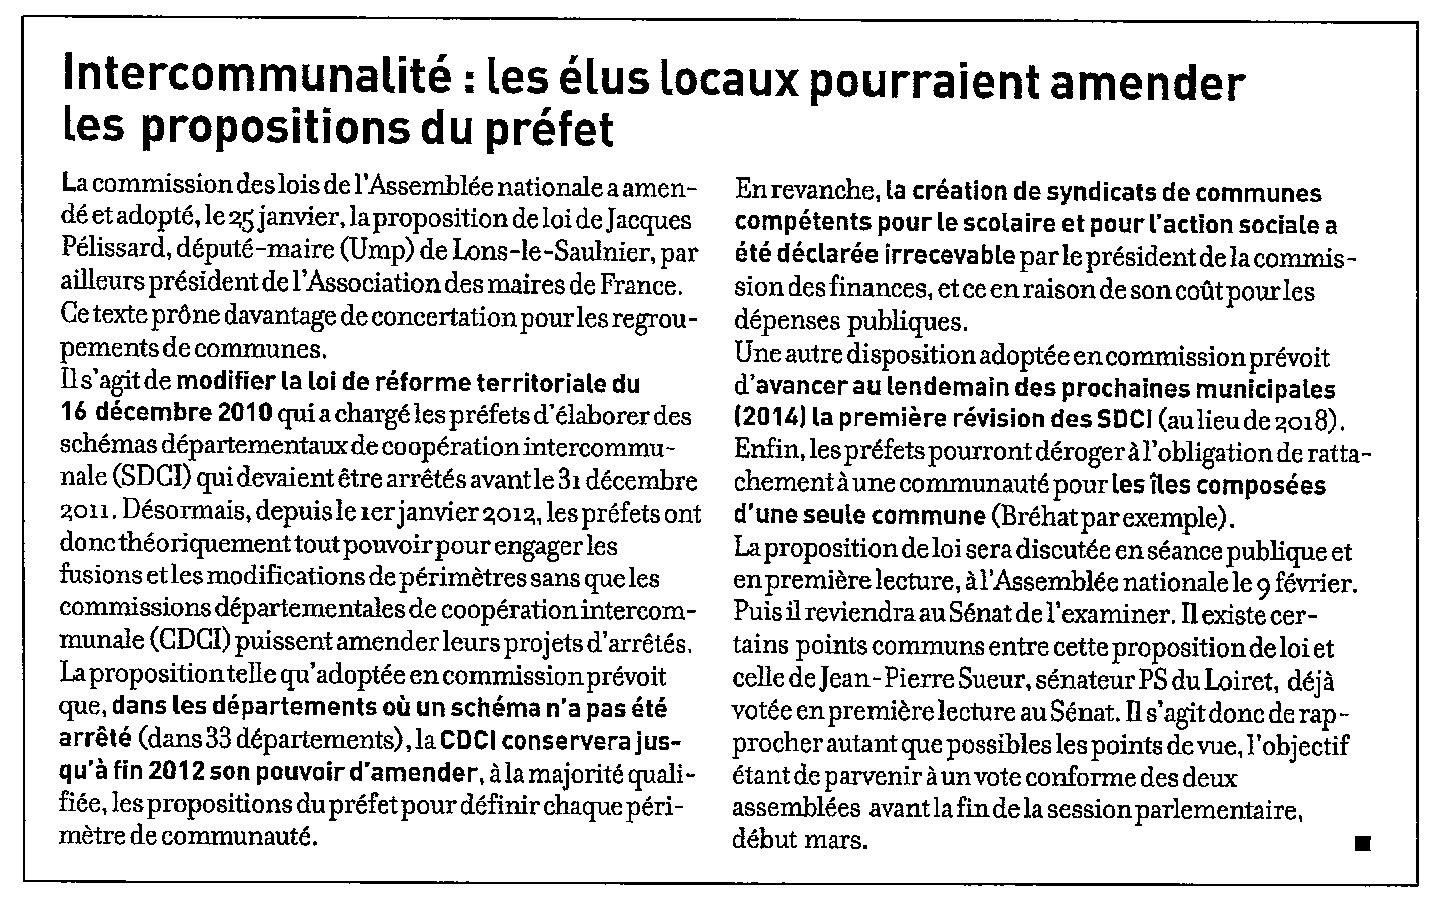 120131_LettreDuMaire_intercommunalite